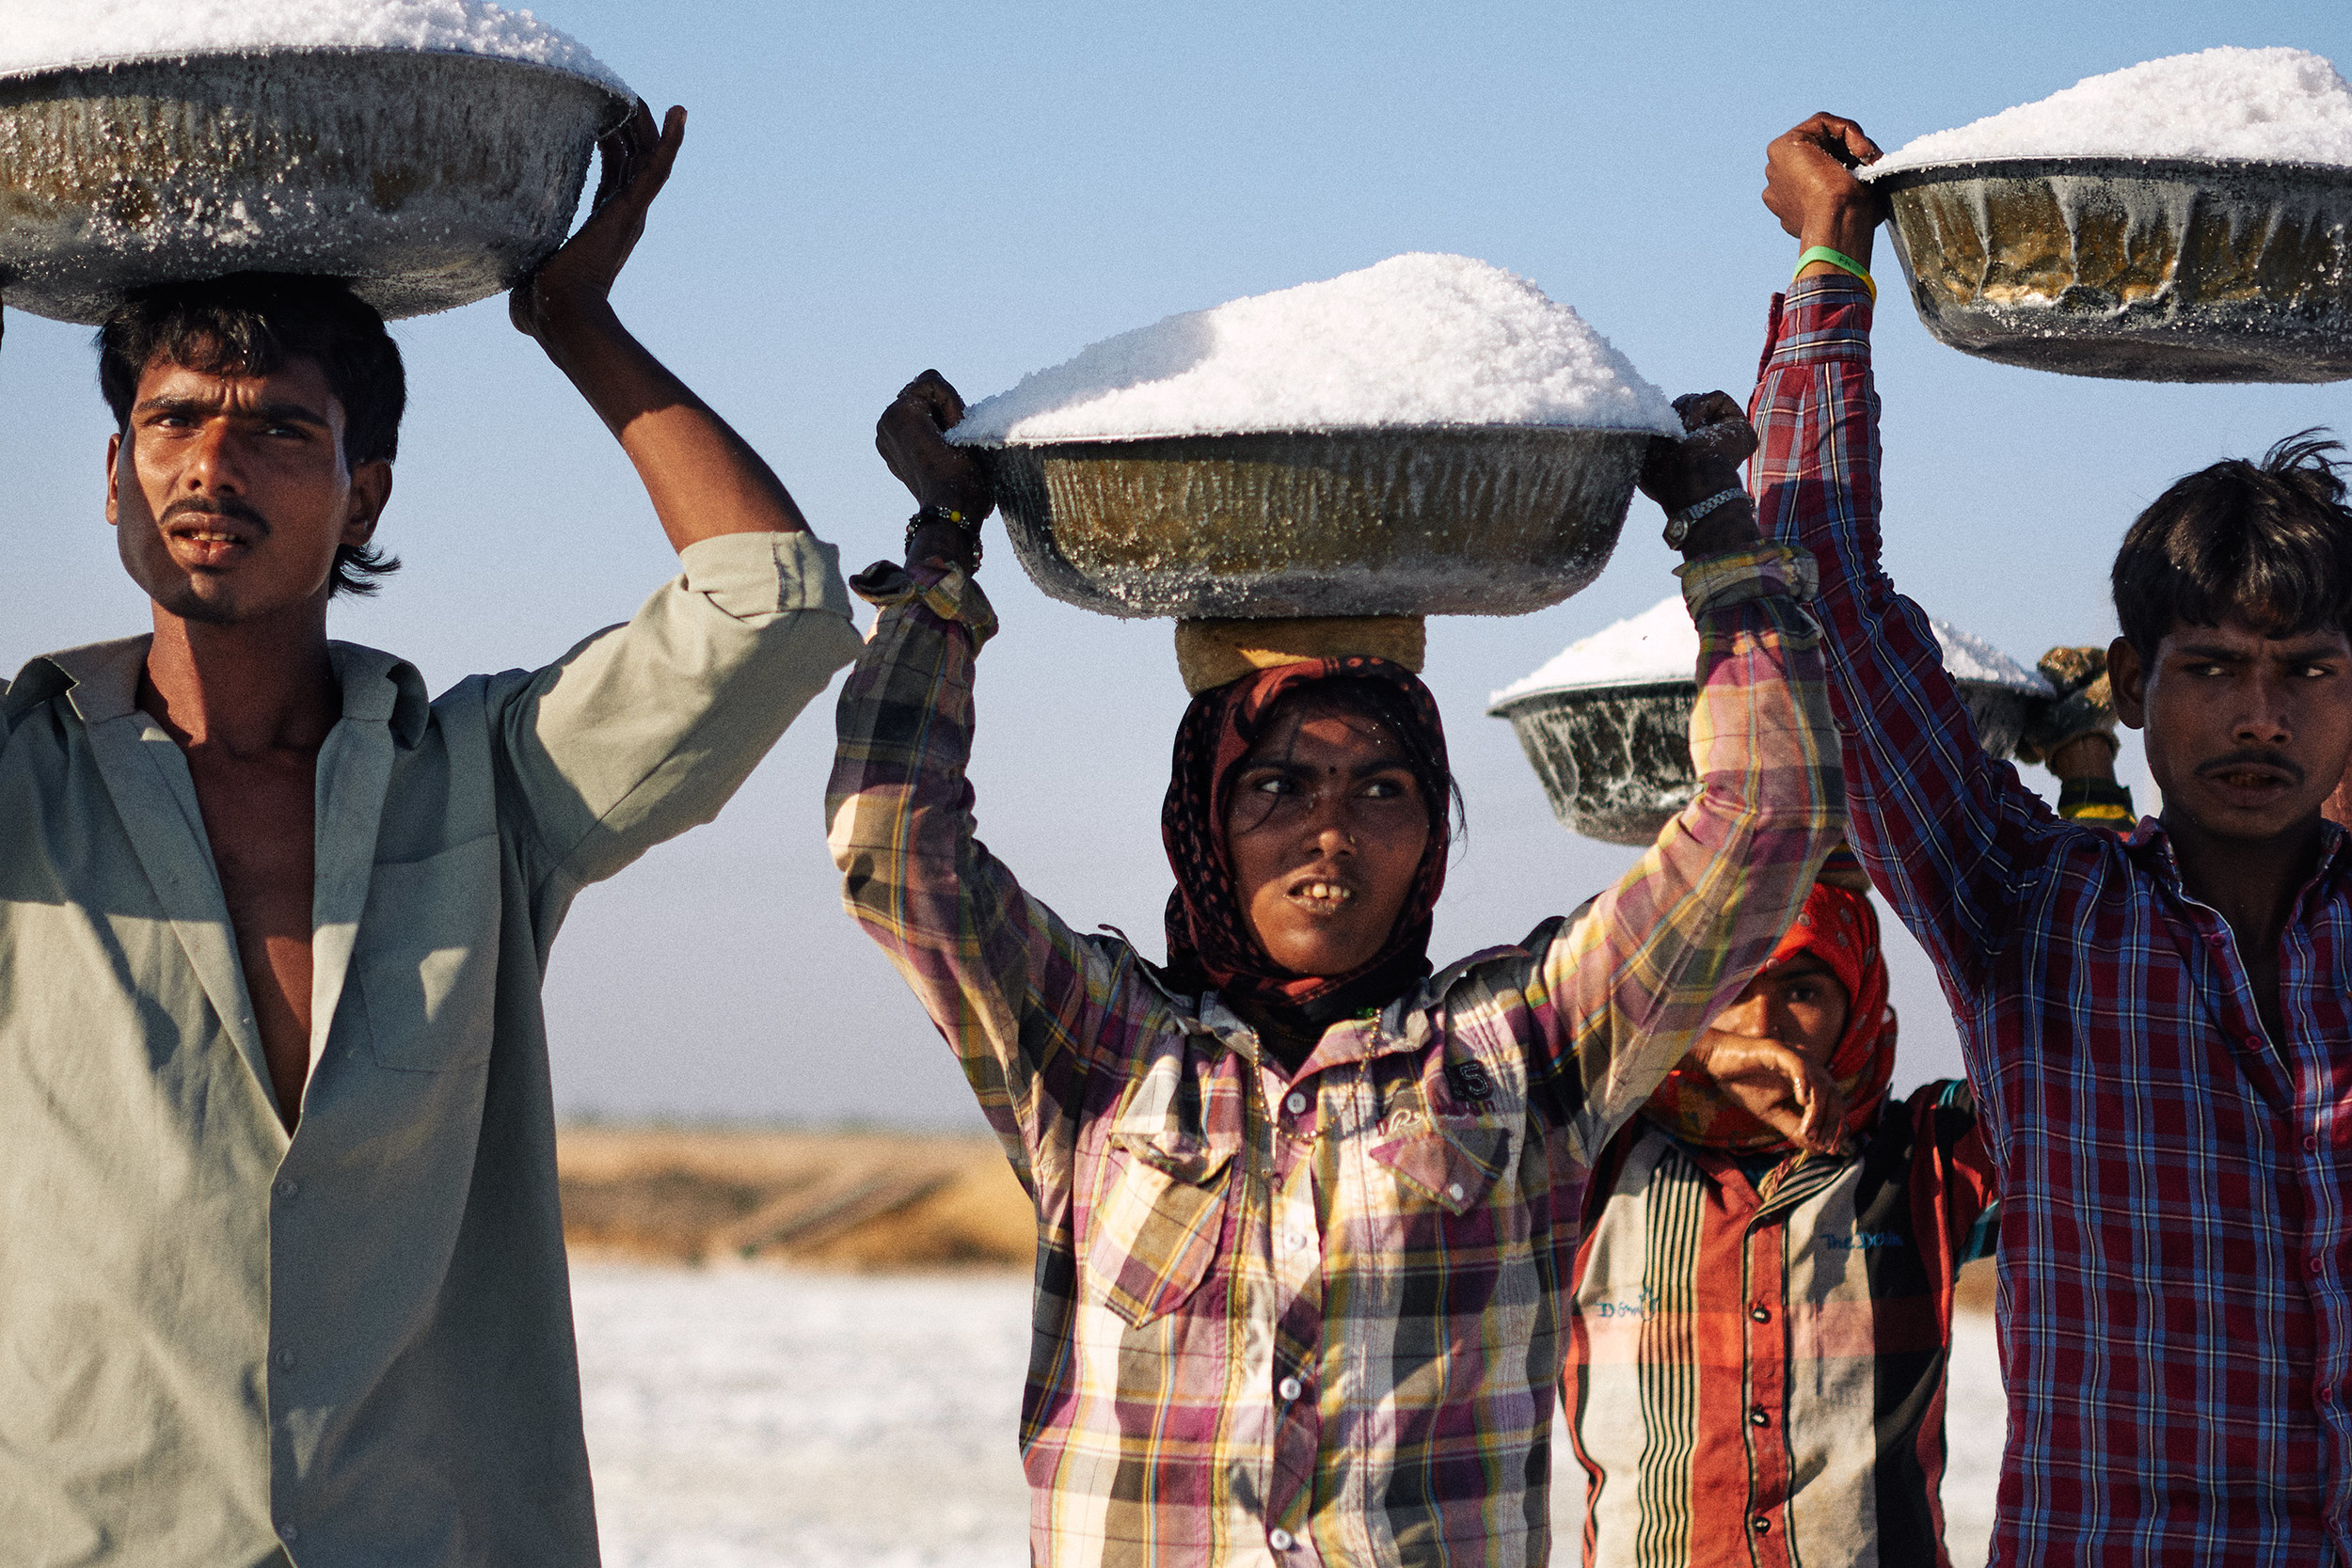 Salt workers with tubs of salt on their heads